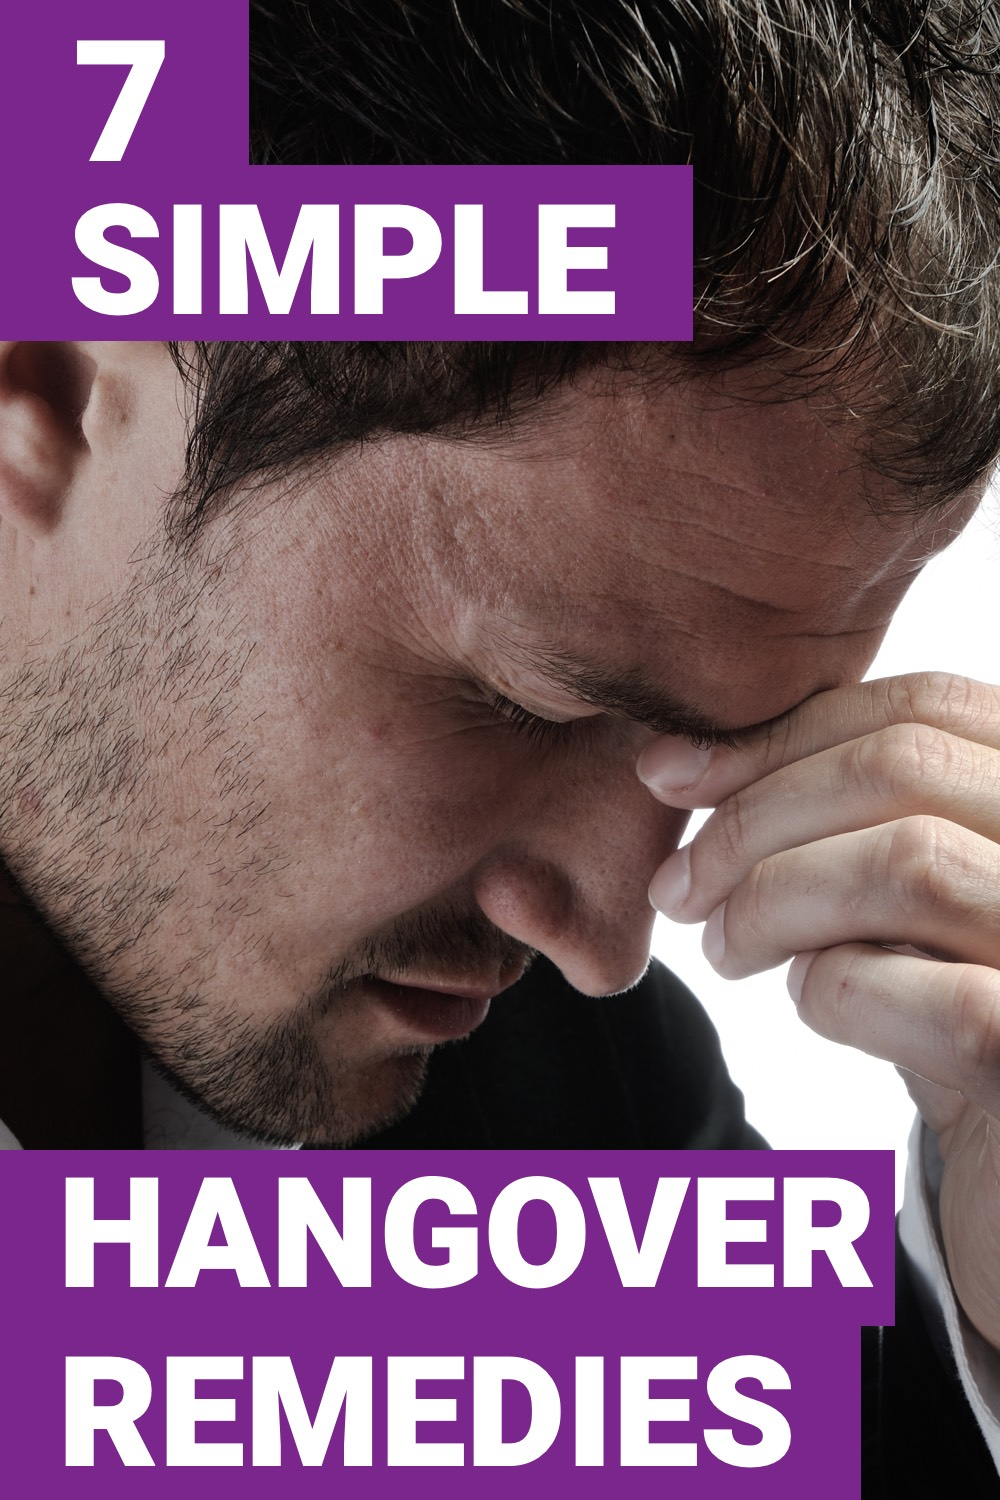 Having a hangover can leave you incapacitated all day. Here are 7 hangover remedies that everyone needs.